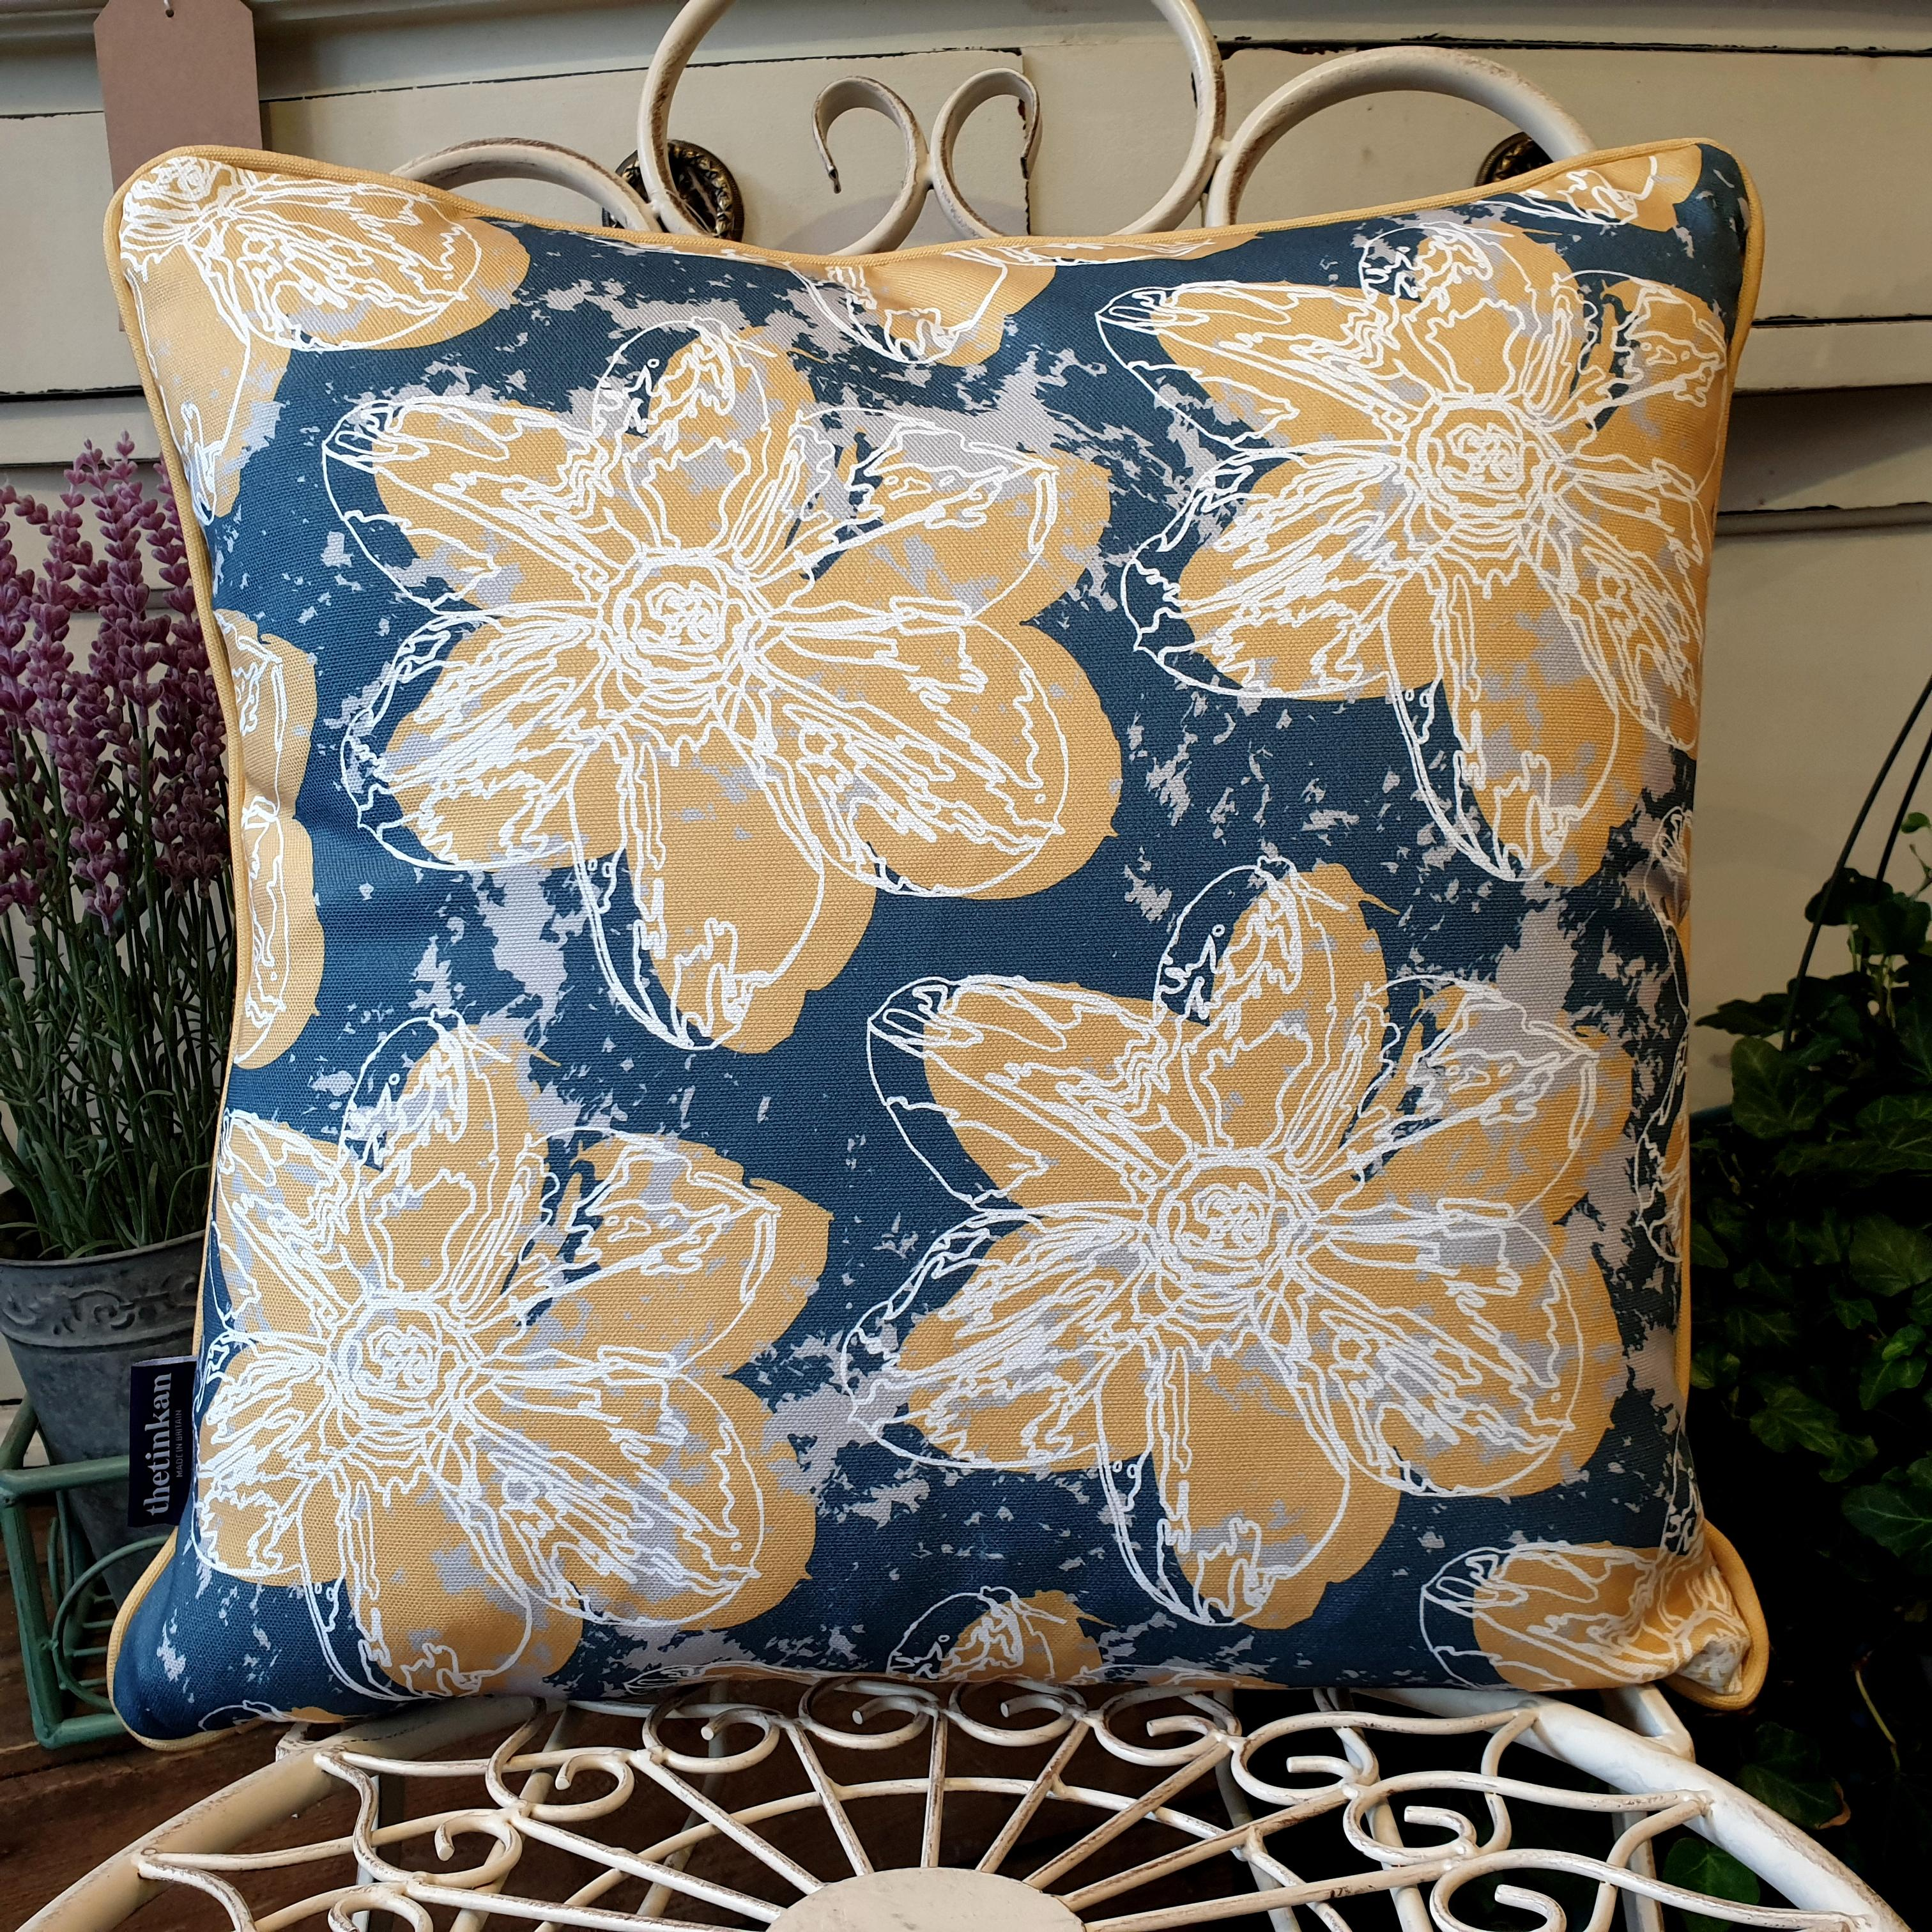 Double-sided 45cm square Flower Splash cushion designed by thetinkan. Mustard yellow narcissus flower and mustard yellow piping with white traced outline set within an oxford blue background with pale grey paint splashes. Available with an optional luxury cushion inner pad. VIEW PRODUCT >>